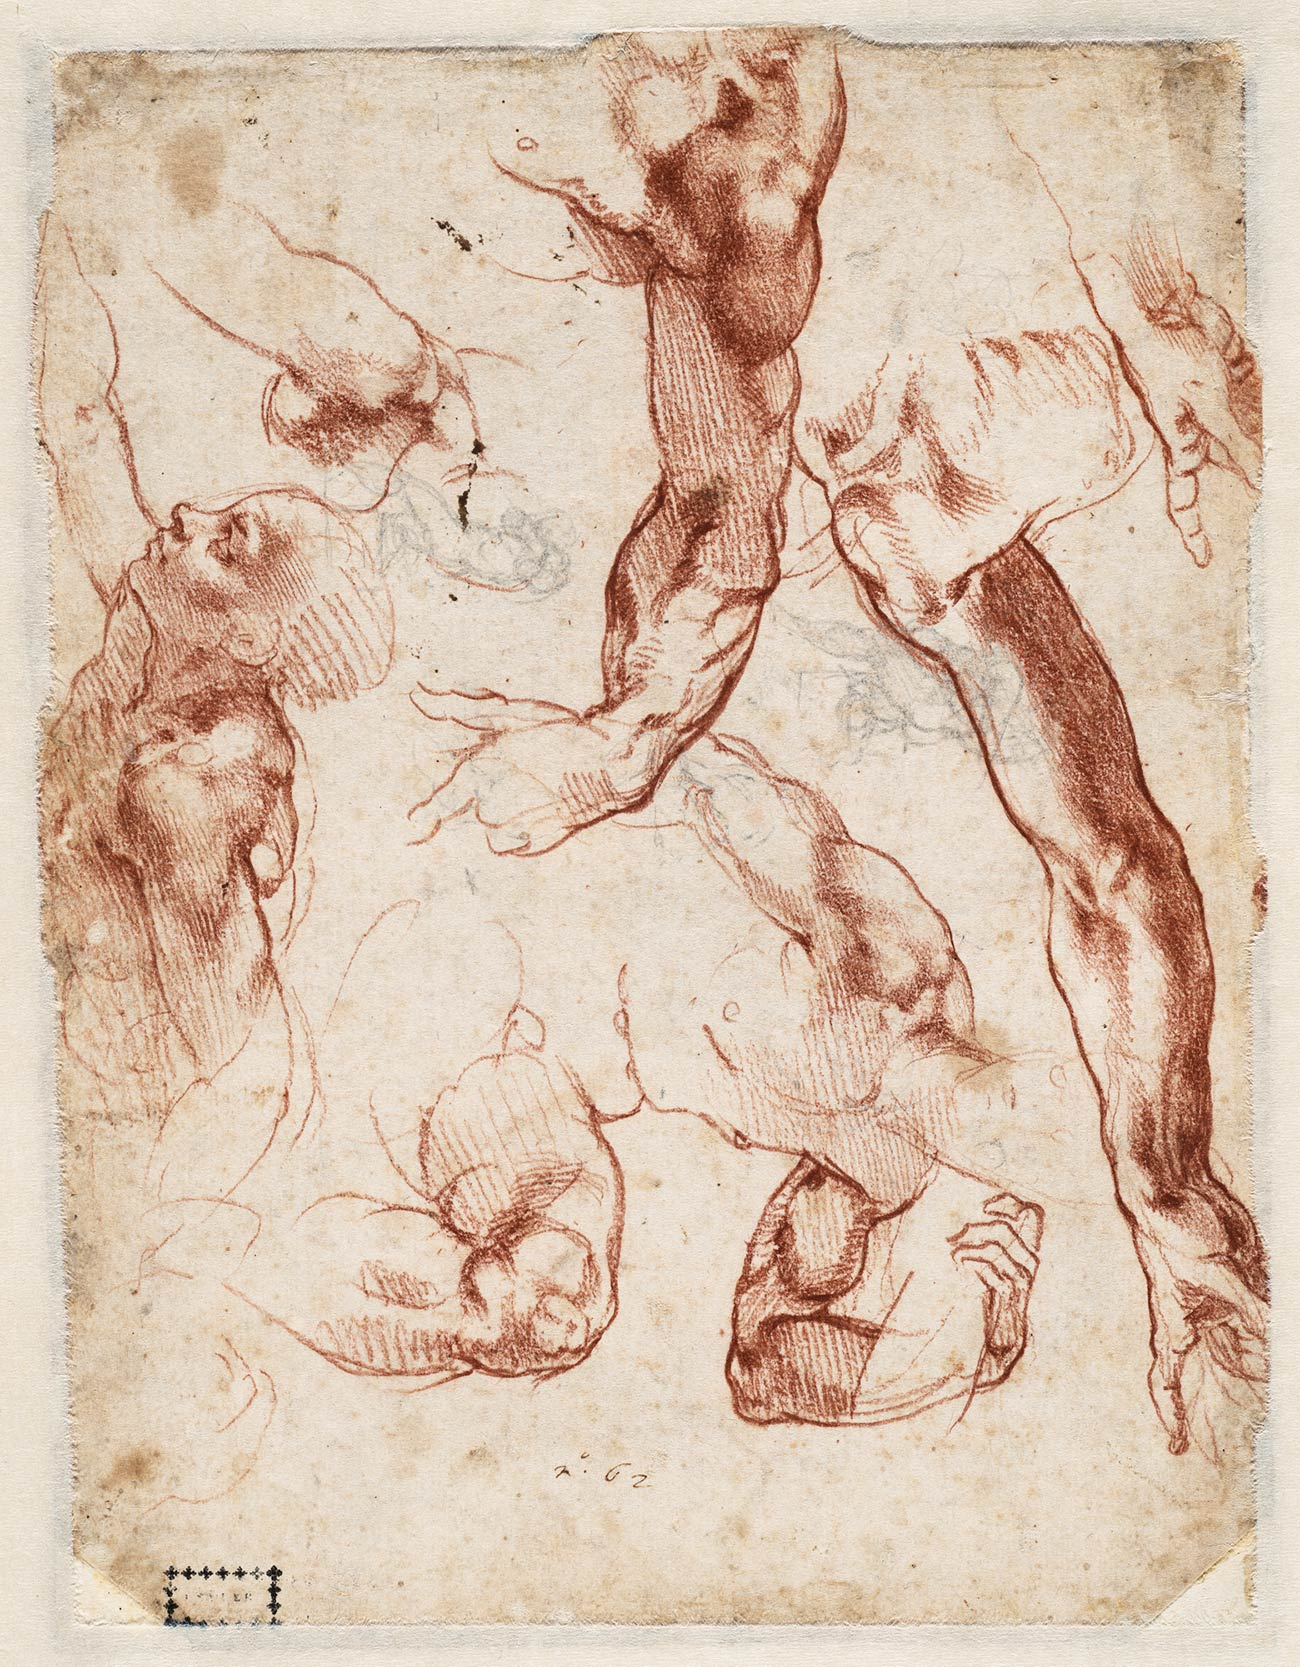 Sketches of arms and shoulders, one head.